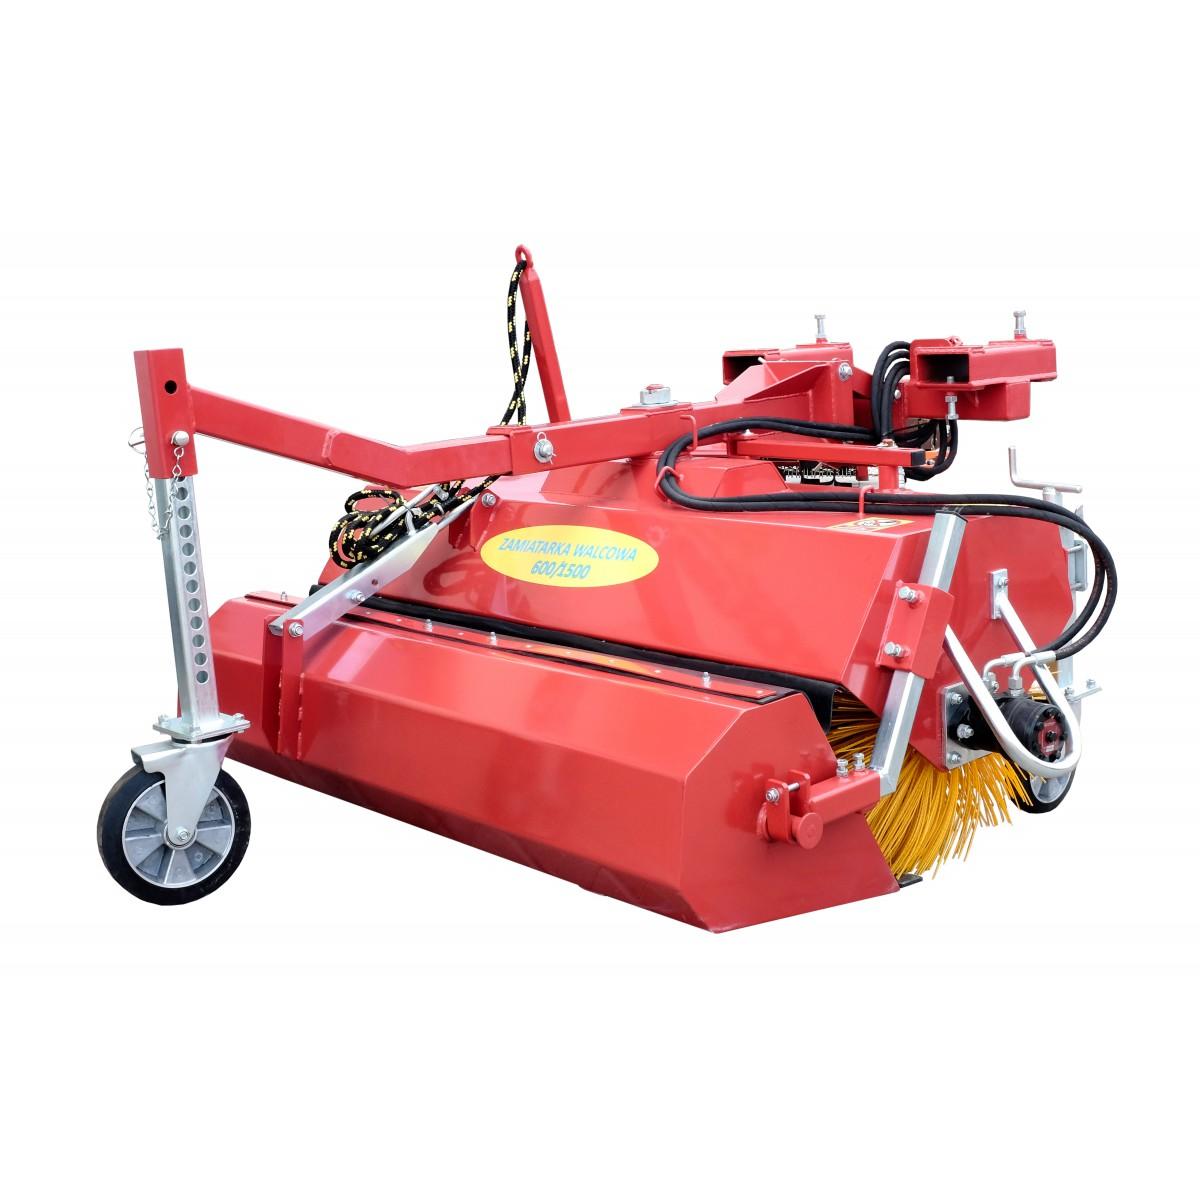 Roller street sweeper 600/1500 with a basket opened hydraulically